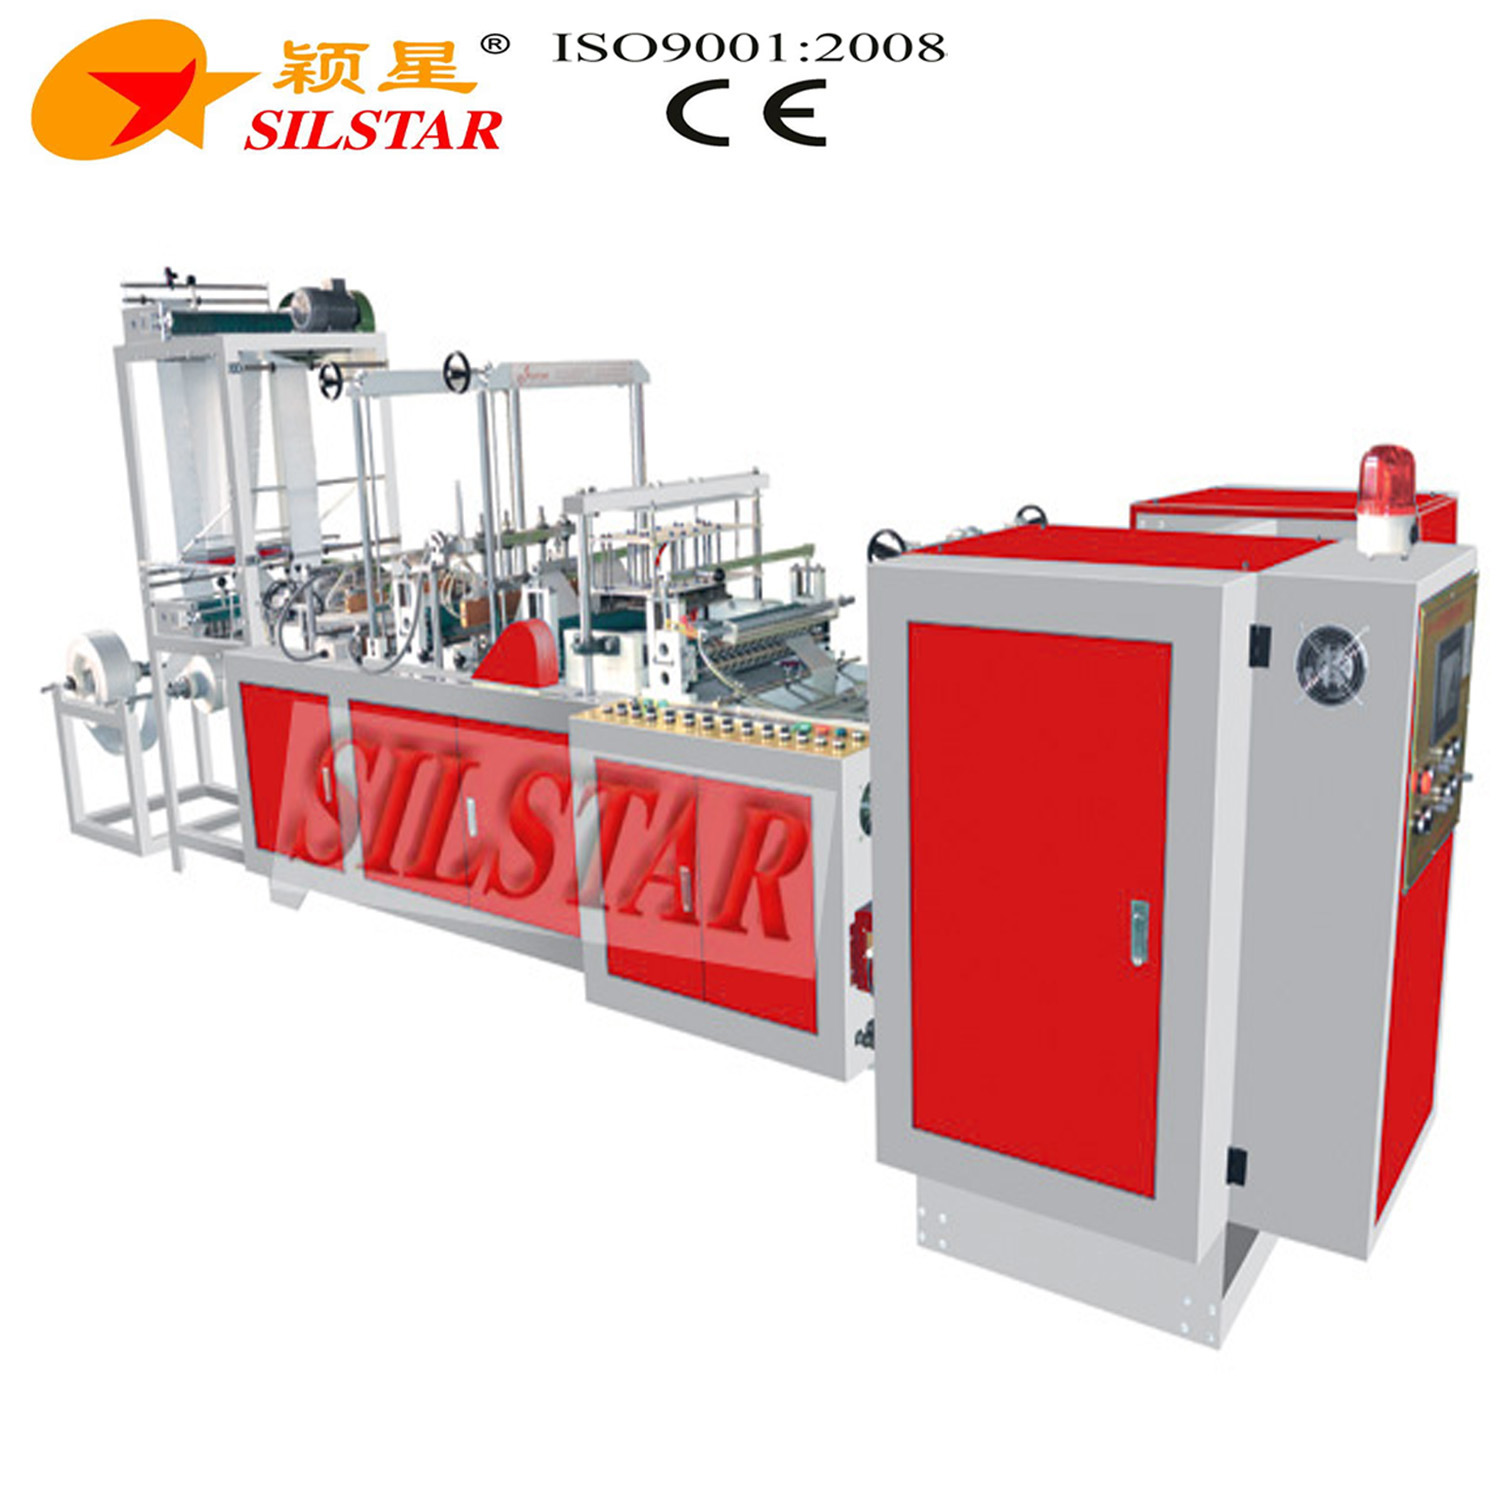 Automatic Double Lines Star Seal Bag Making Machine